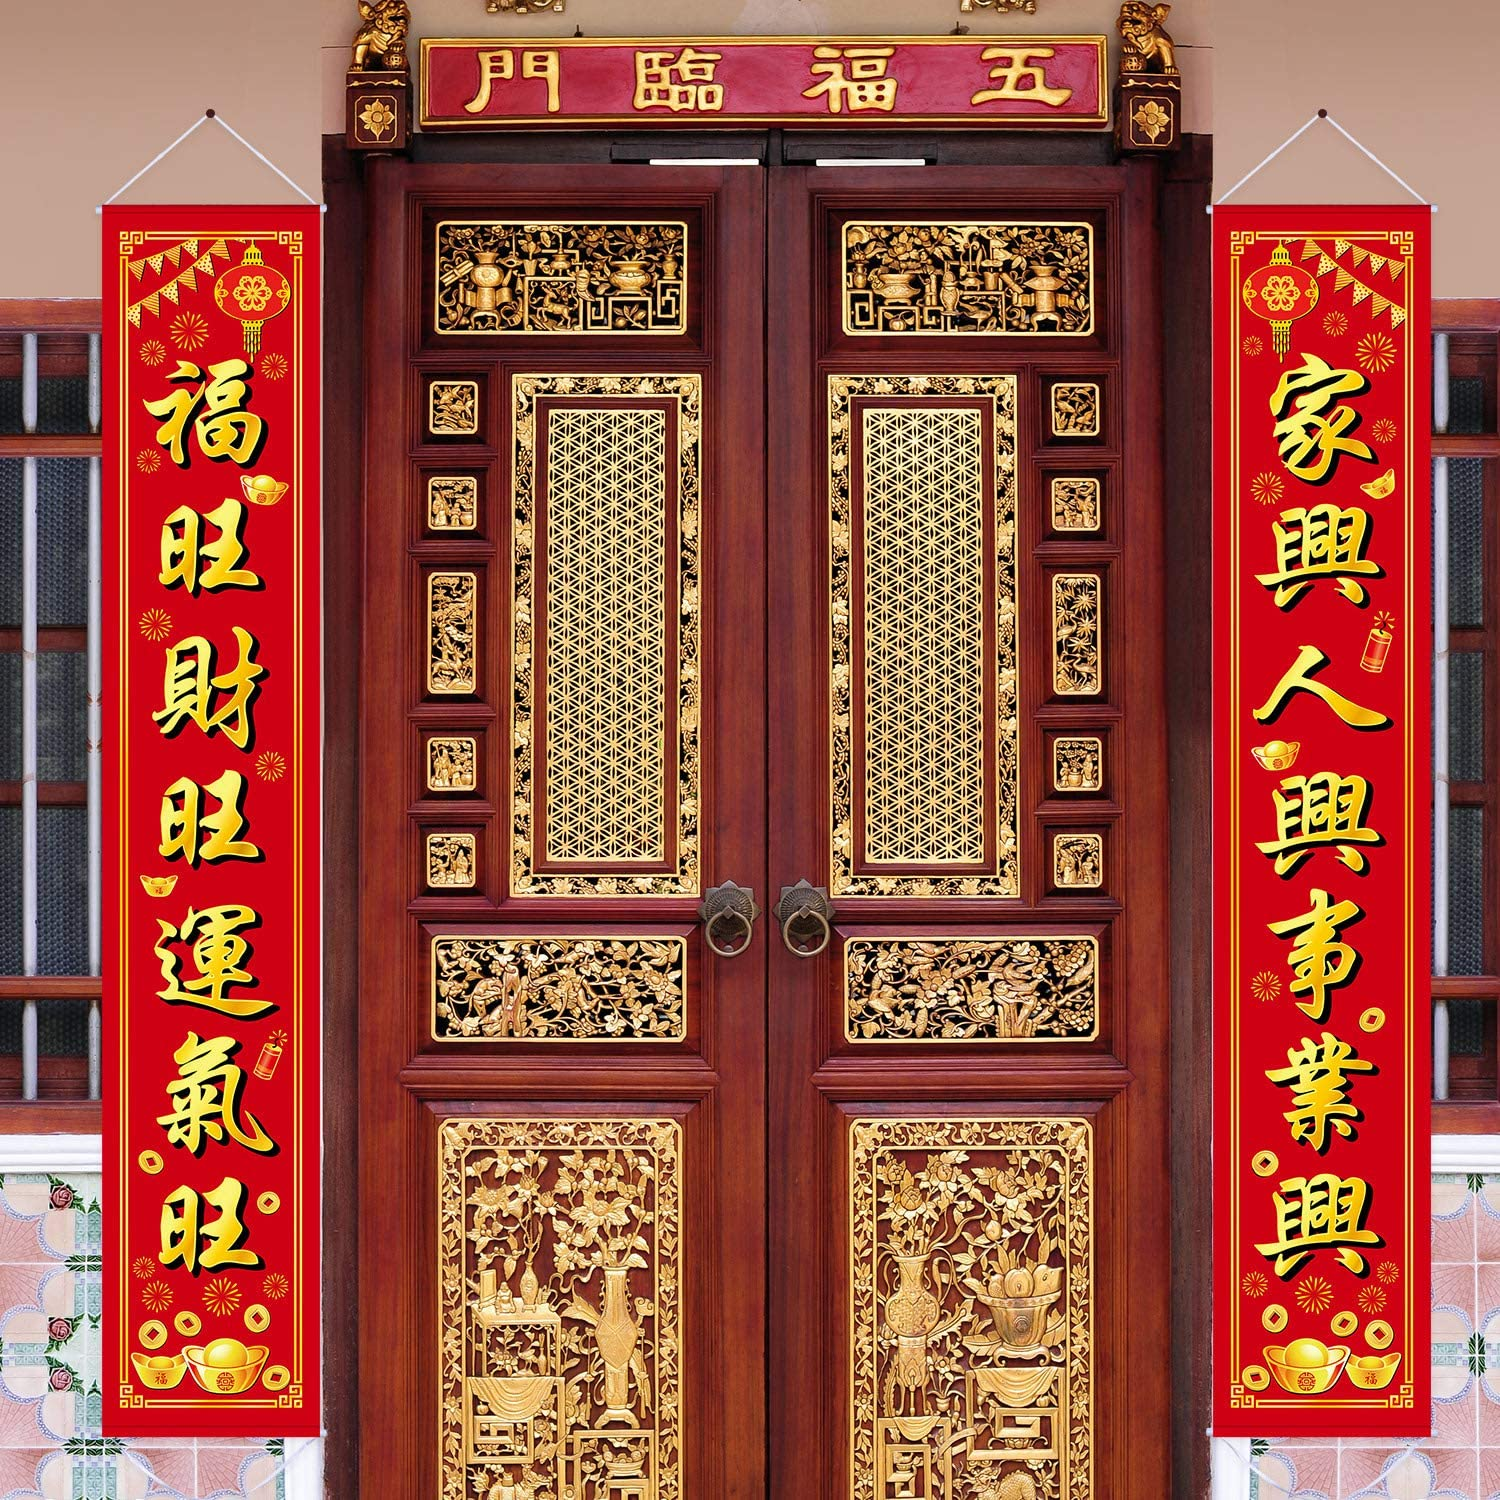 2 Pieces Chinese New Year Banner 2020 Year of Rat Party Decorations Chinese Welcome Porch Sign for Chinese Spring Festival Supplies Outdoor and Indoor (Chinese Characters)